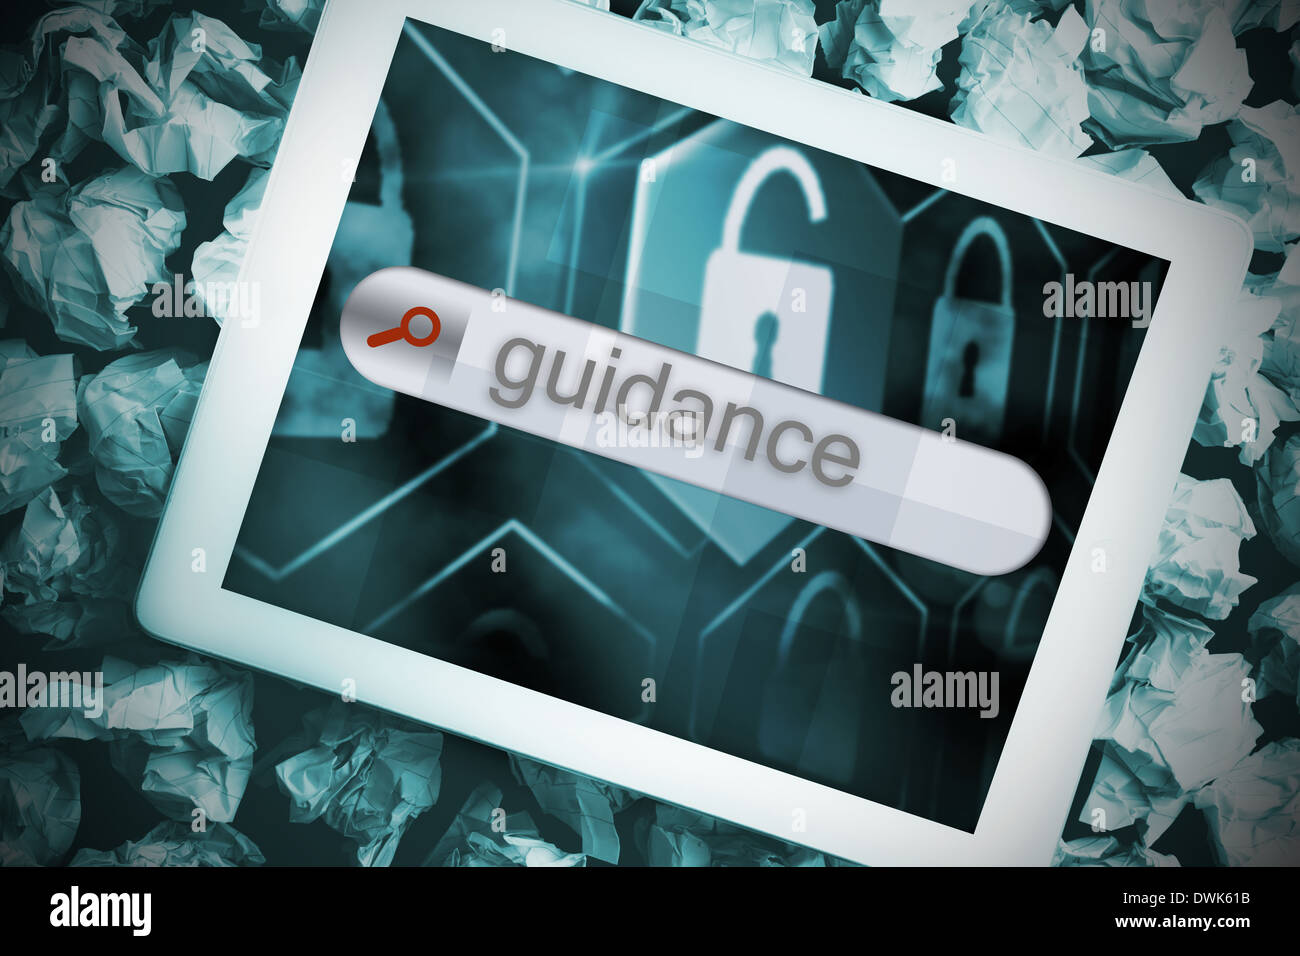 Guidance in search bar on tablet screen - Stock Image